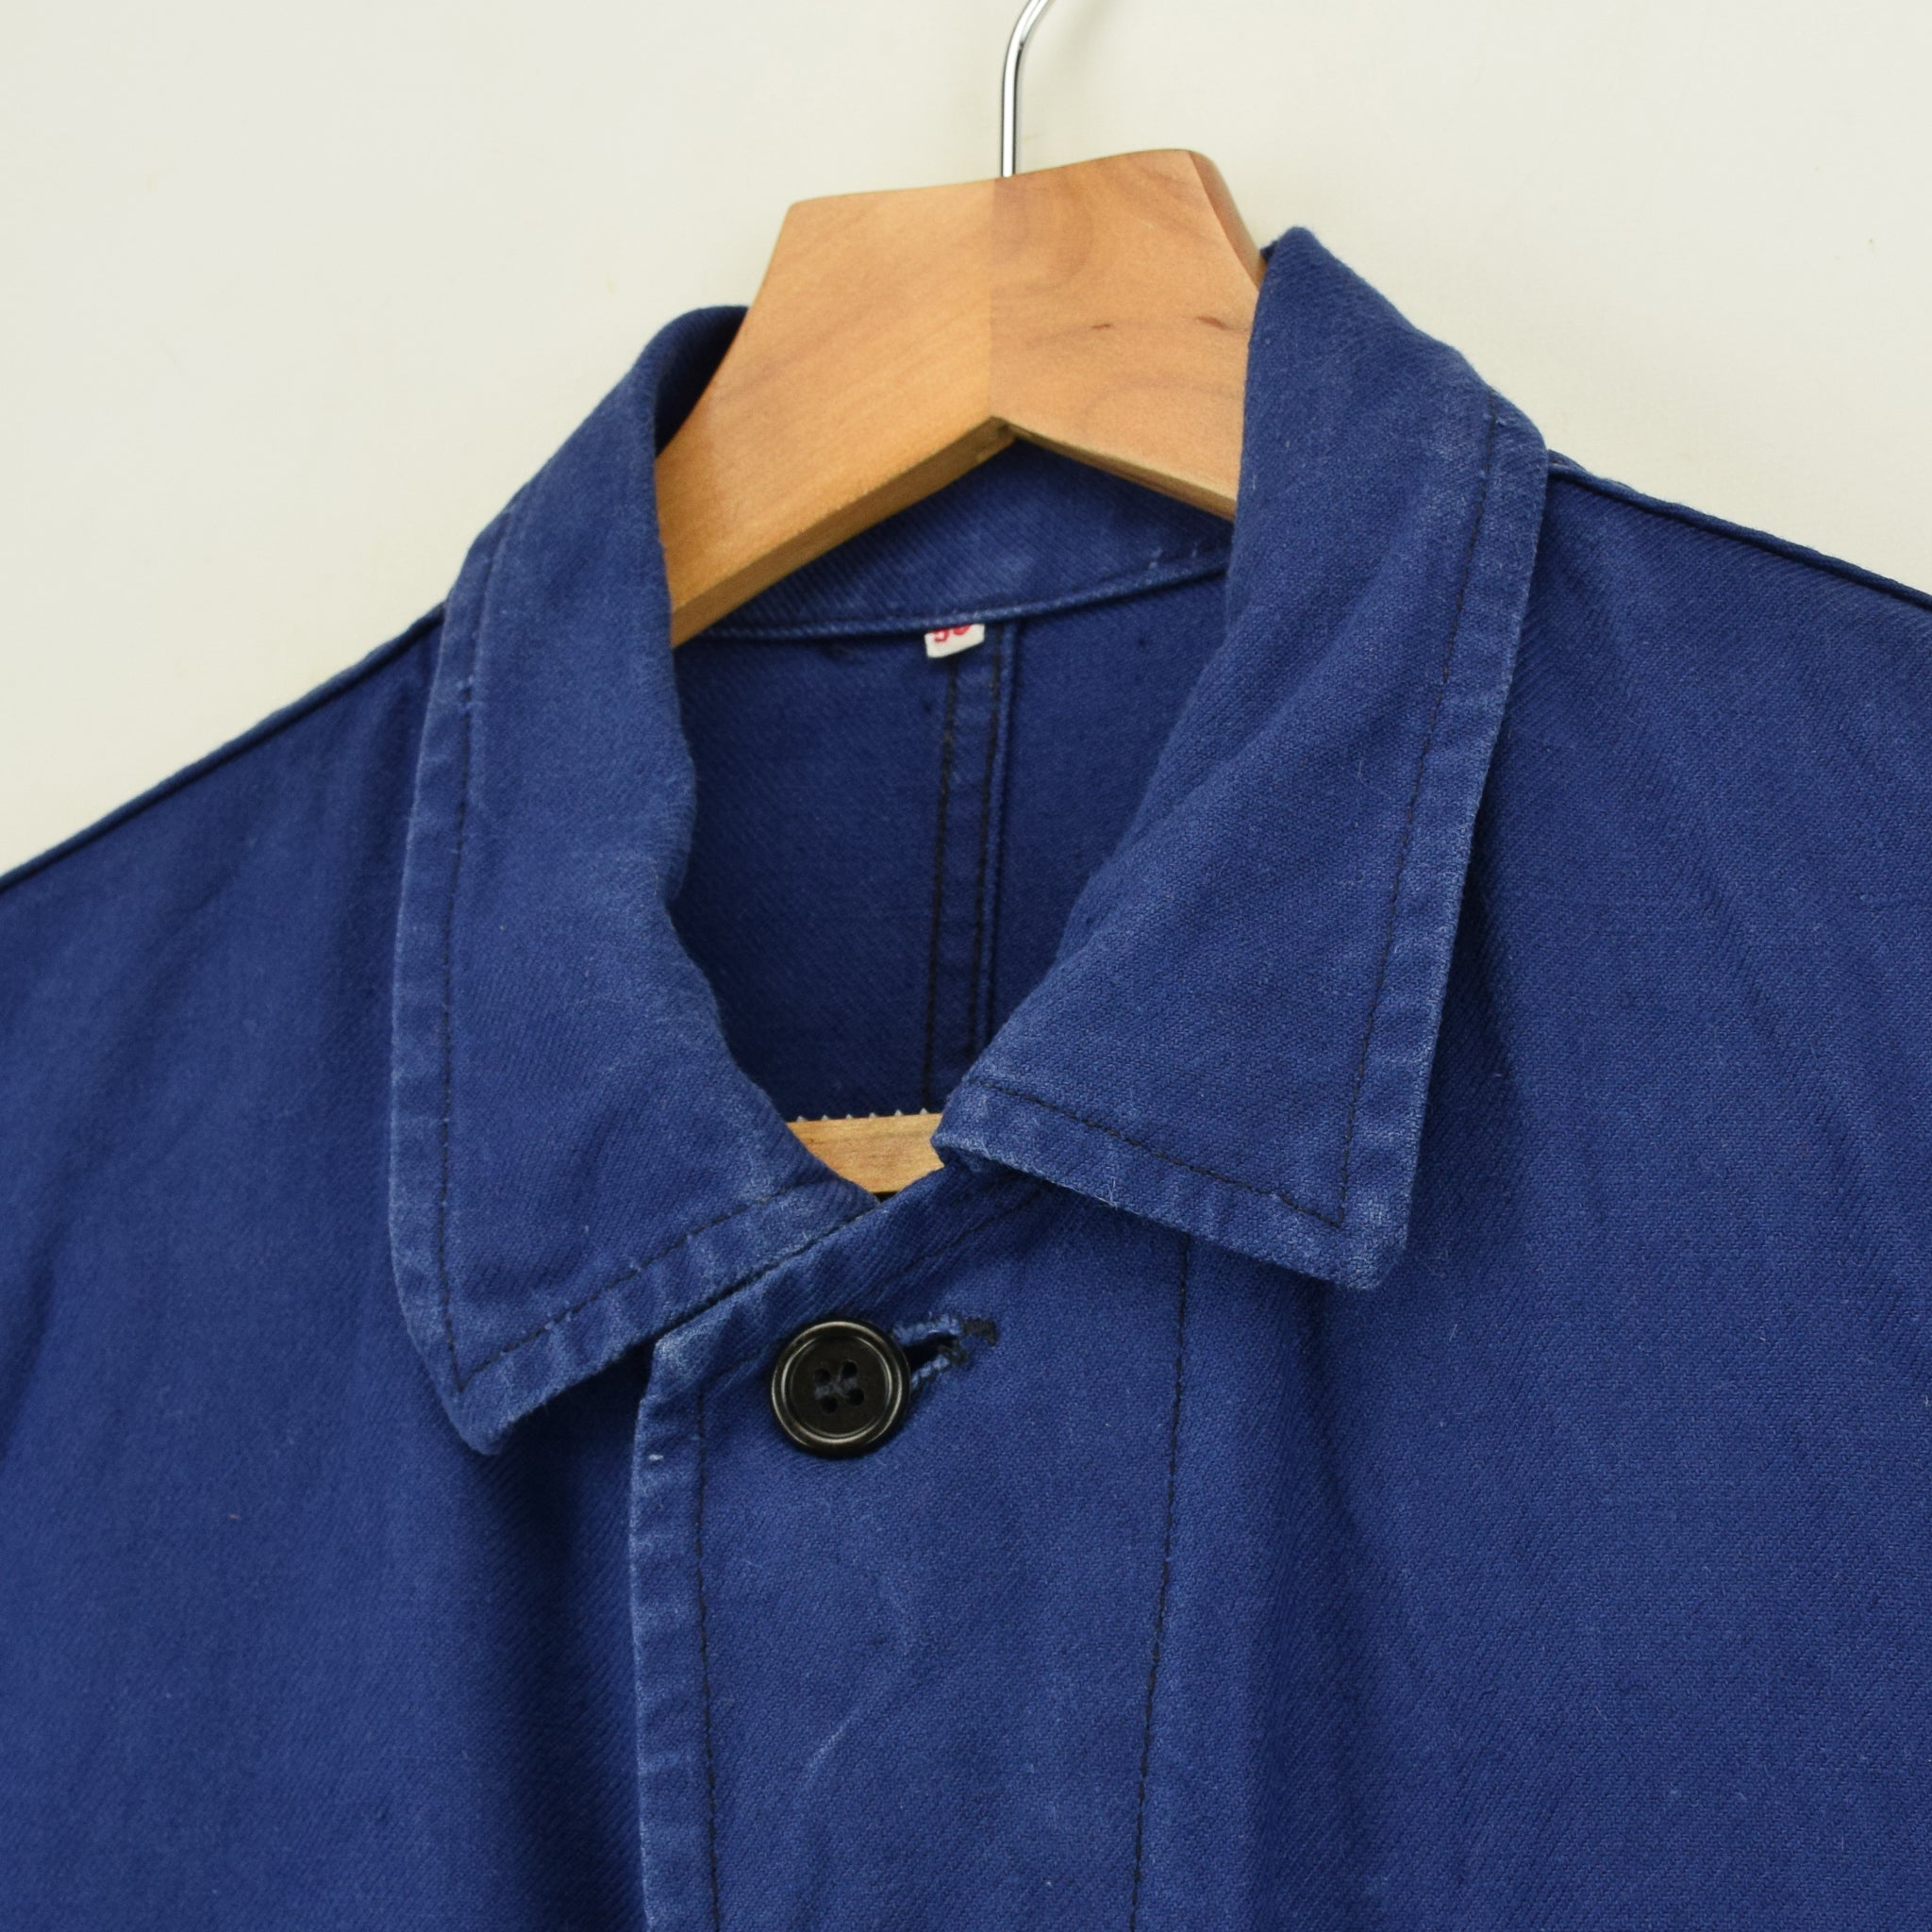 Vintage Indigo Blue French Worker Sanforized Cotton Chore Jacket M collar